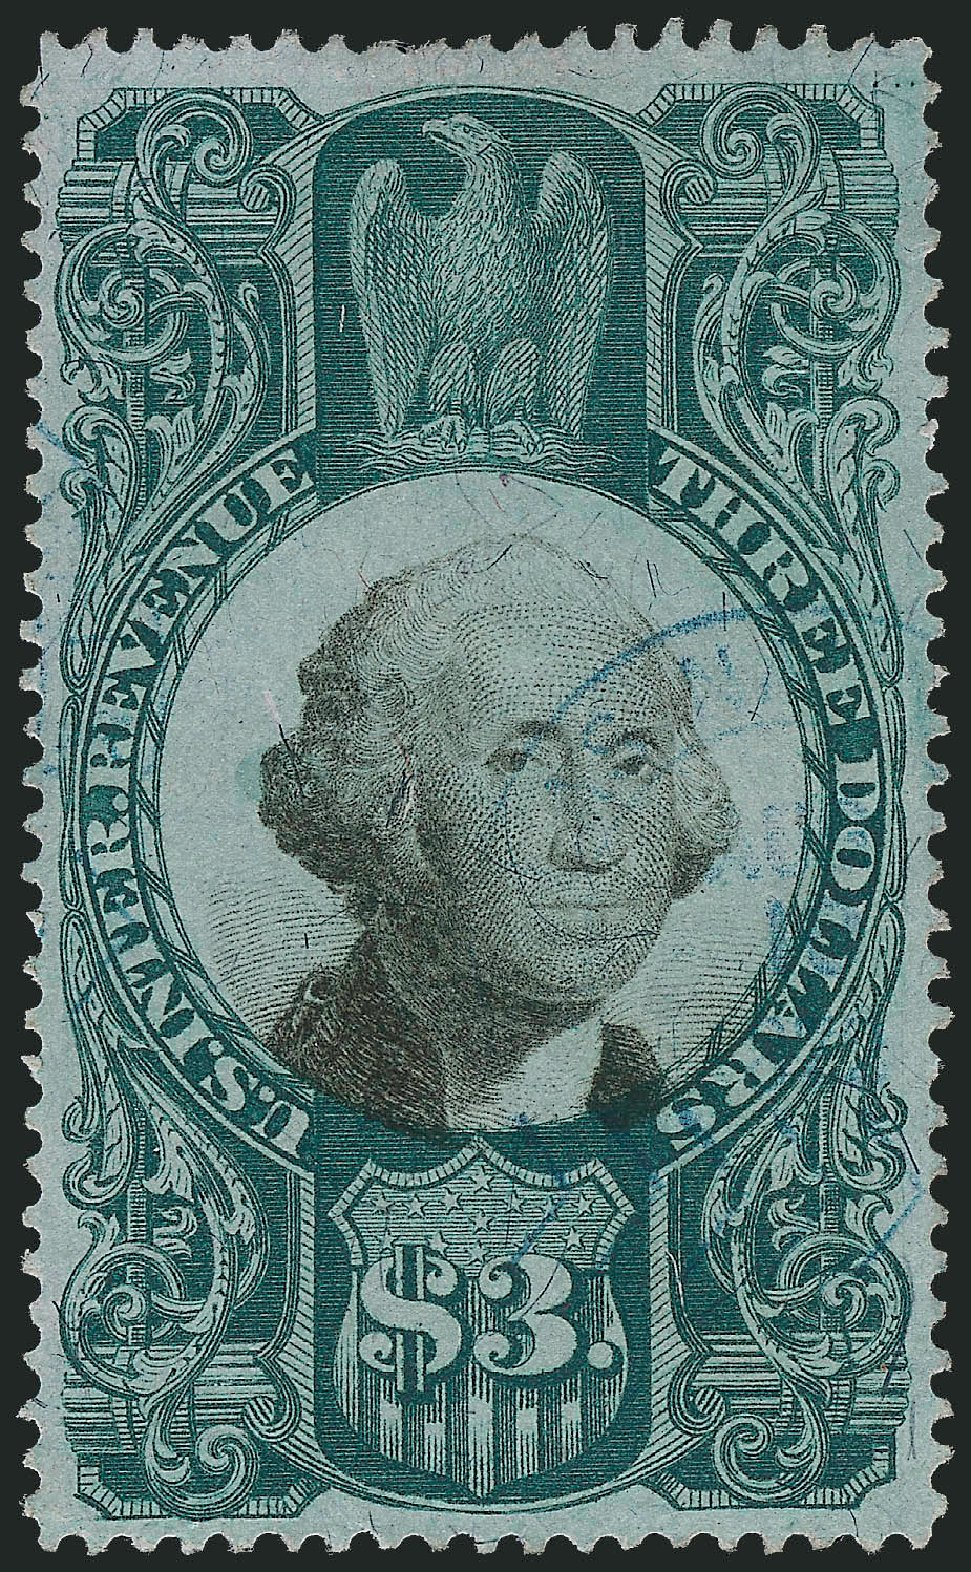 US Stamp Price Scott Catalogue #R147 - 1872 US$3.00 Revenue Documentary . Robert Siegel Auction Galleries, Dec 2009, Sale 978, Lot 1178